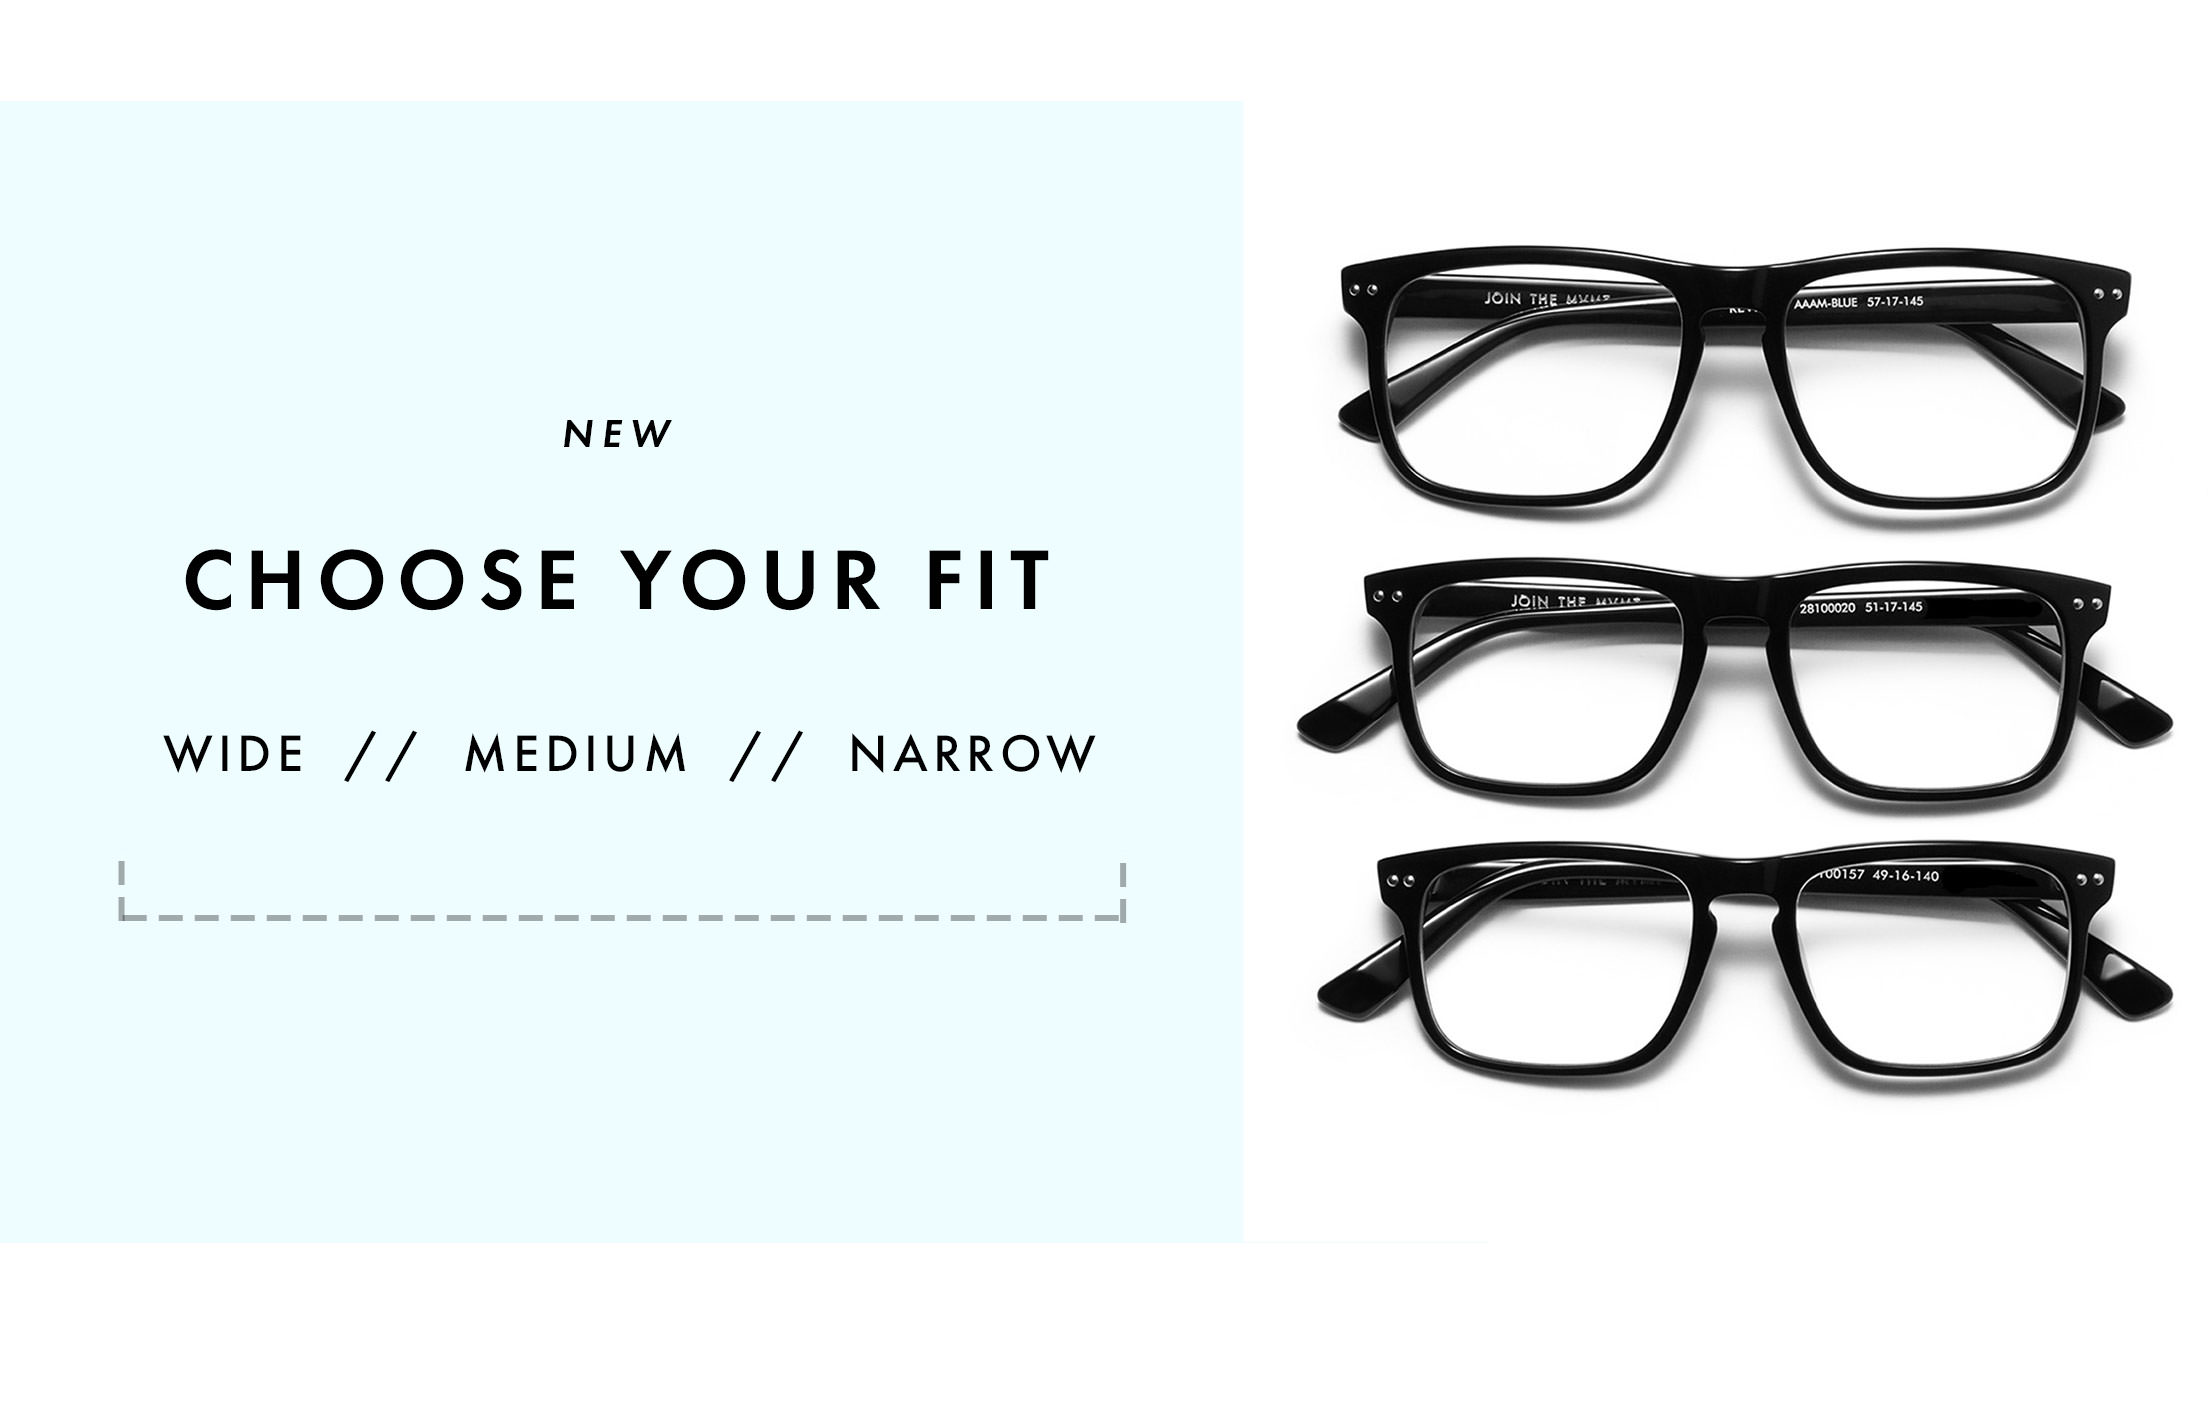 Choose Your Fit: Wide, Medium, Narrow